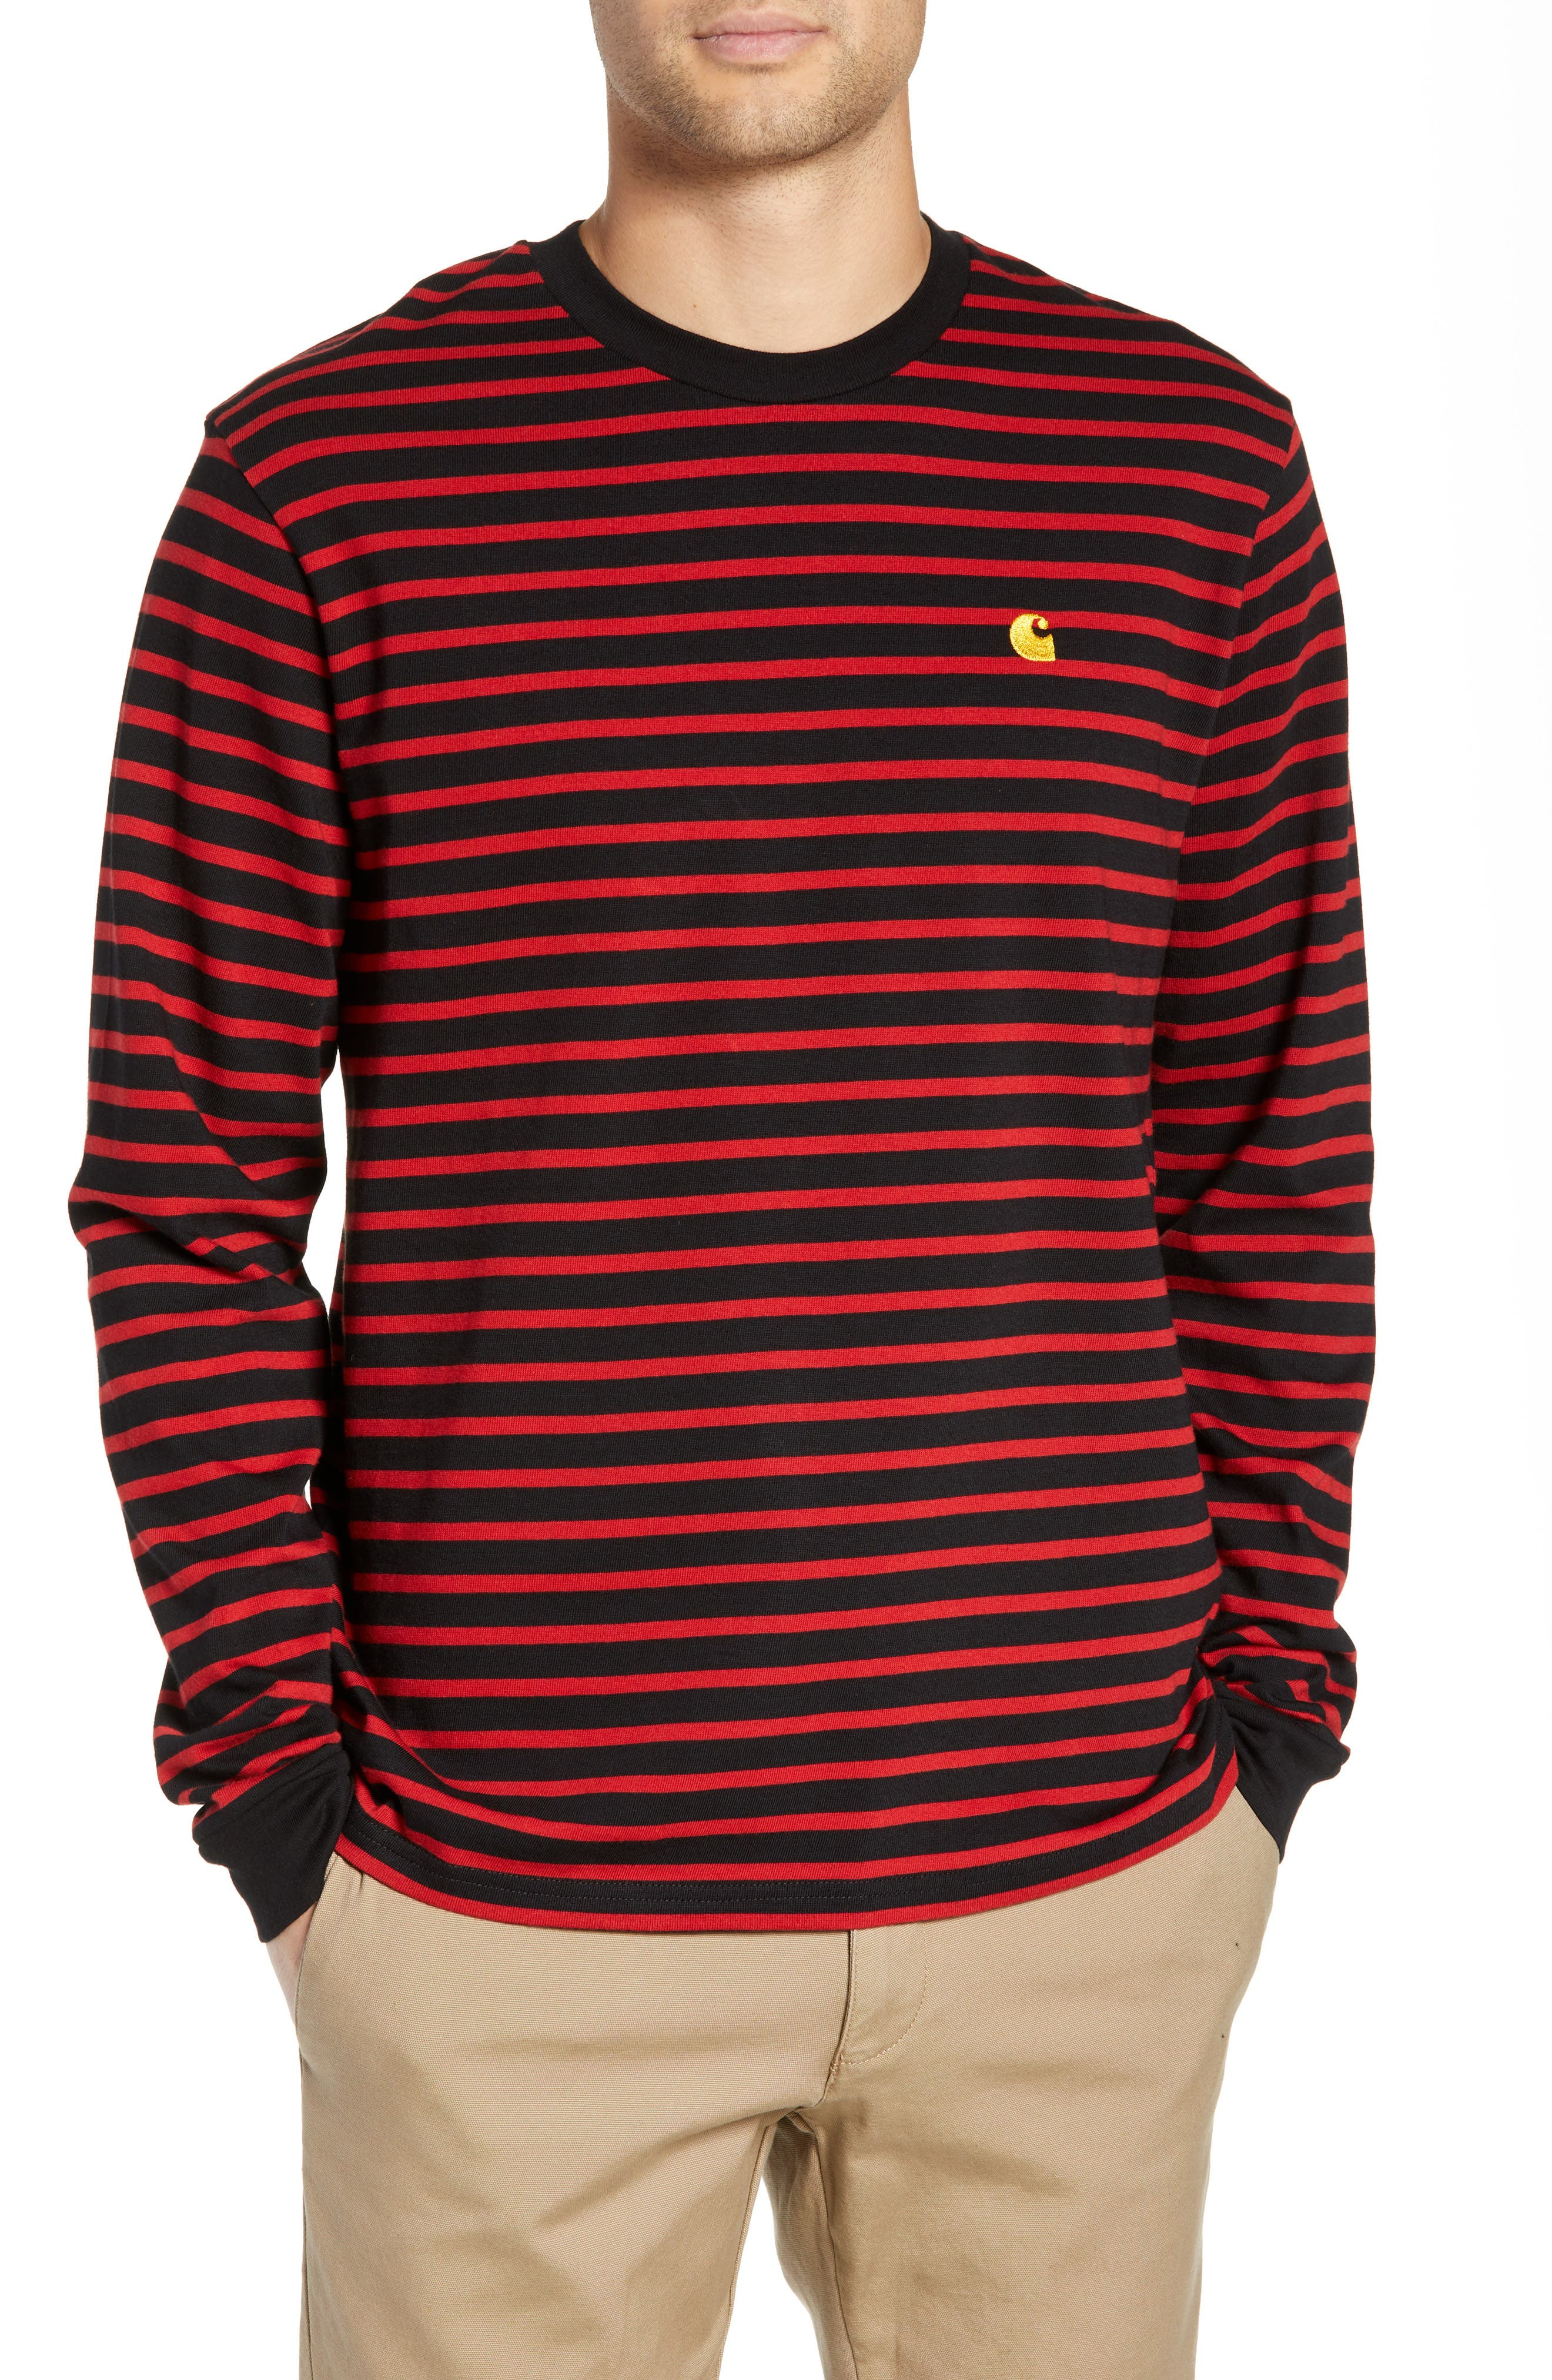 Long Sleeve Robie T-Shirt,                         Main,                         color, BLACK/BLAST RED/QUINCE